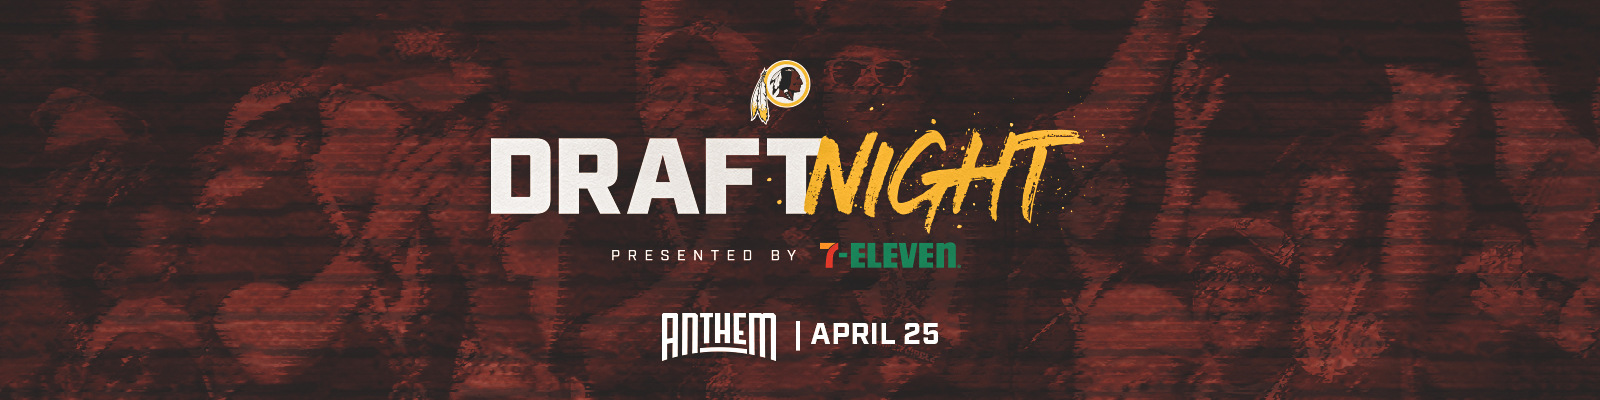 Tickets for Draft Night are sold out and may become available at a later date. Click below to check for updates!